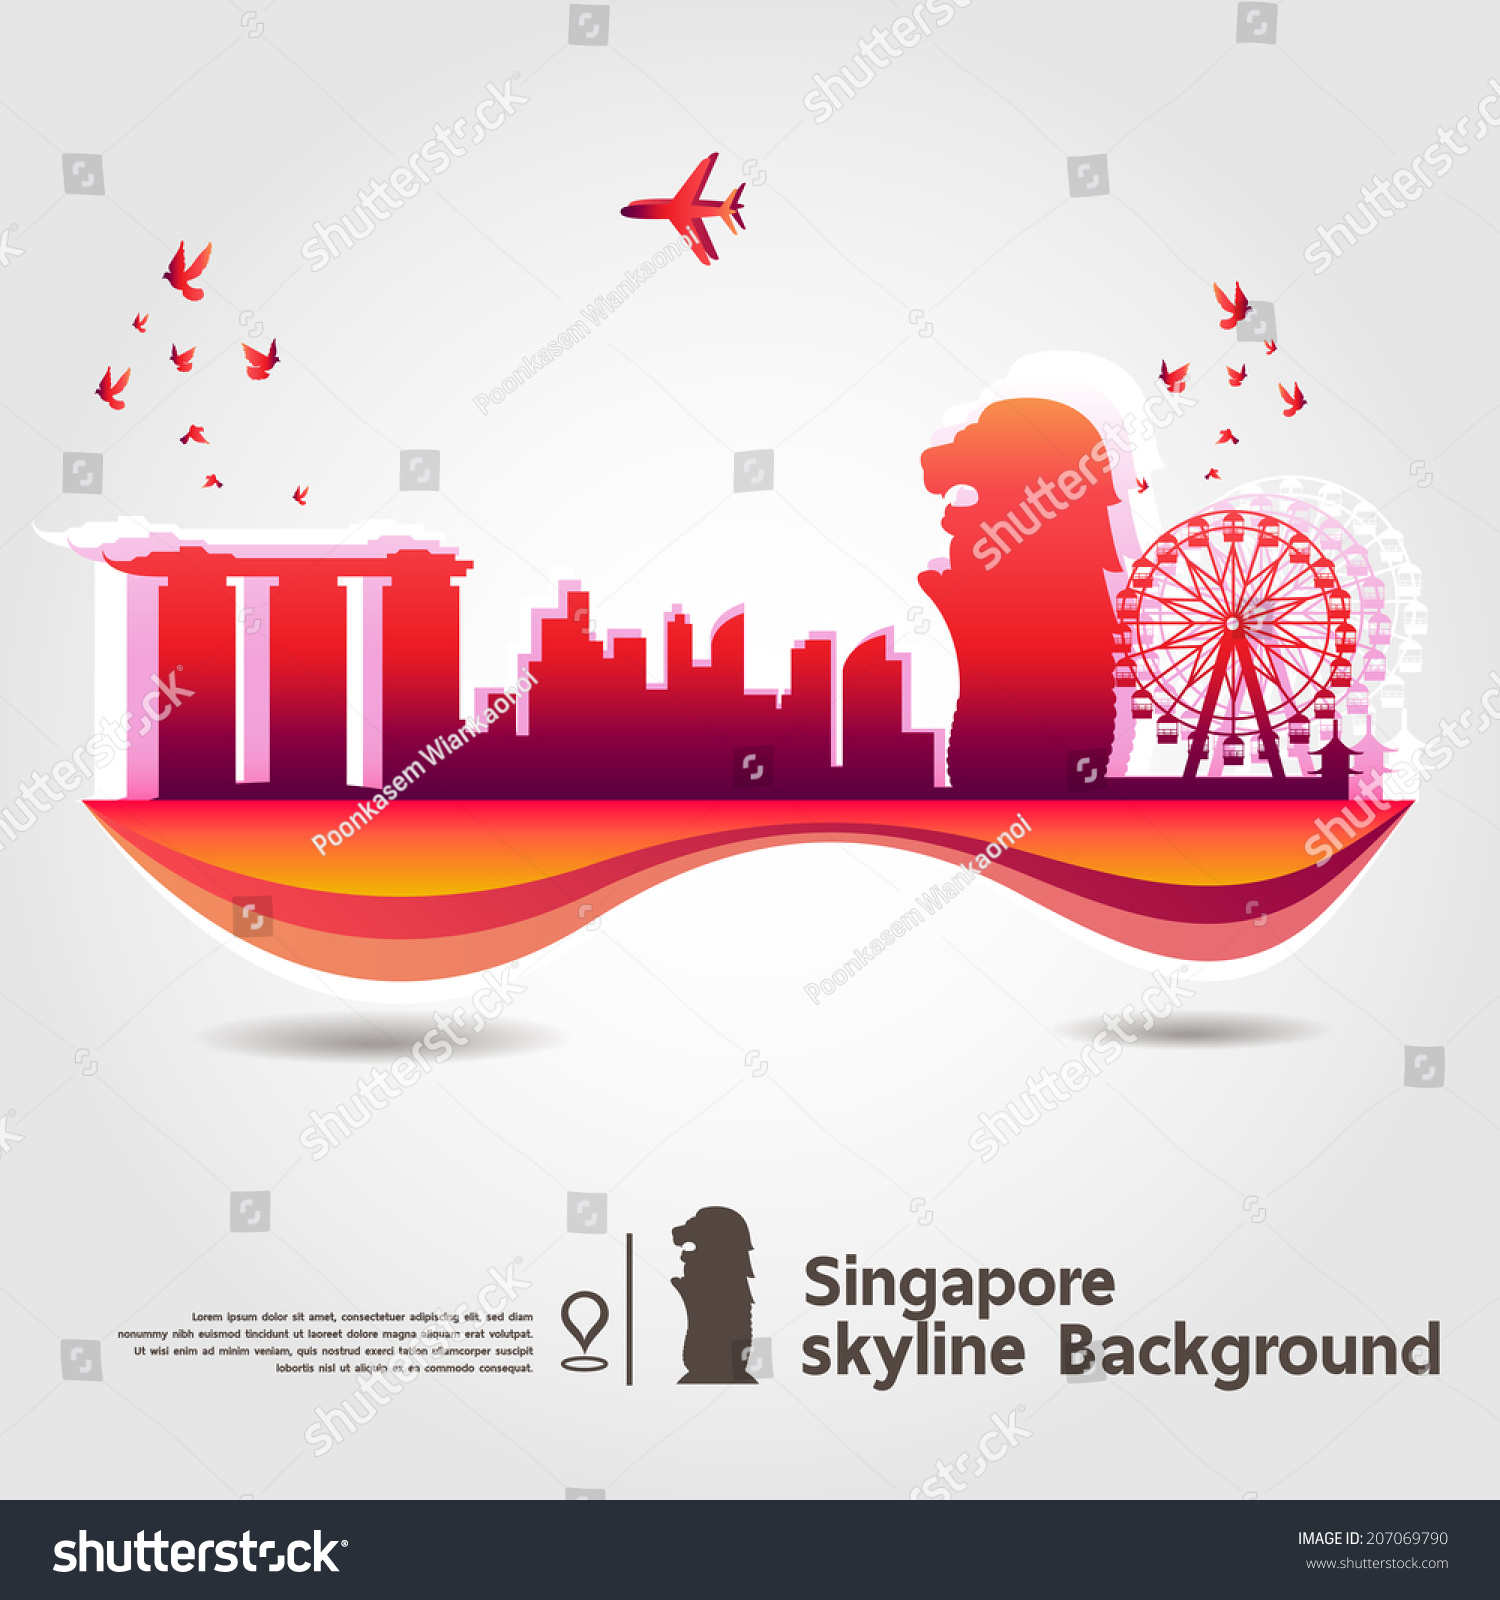 Stock Vector Singapore Skyline Background Vector Illustration